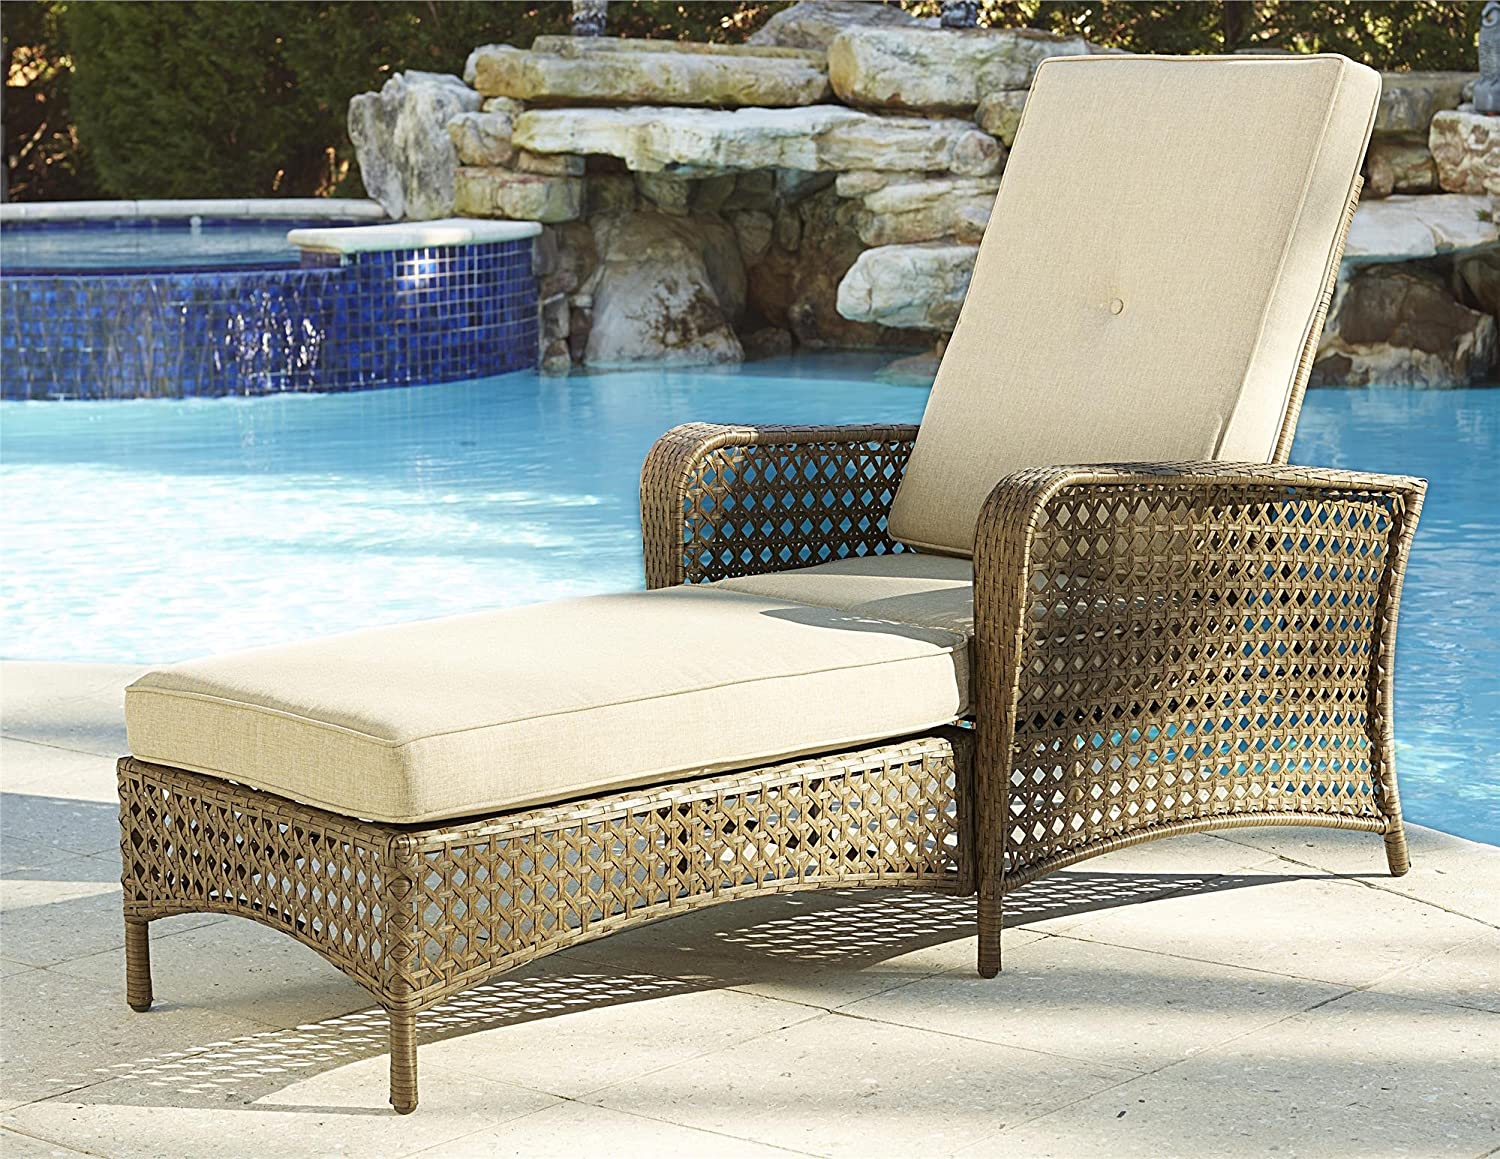 Amazon.com : Cosco Outdoor Living Adjustable Chaise Lounge Chair Lakewood  Ranch Steel Woven Wicker Patio Furniture With Cushion, Brown : Garden U0026  Outdoor